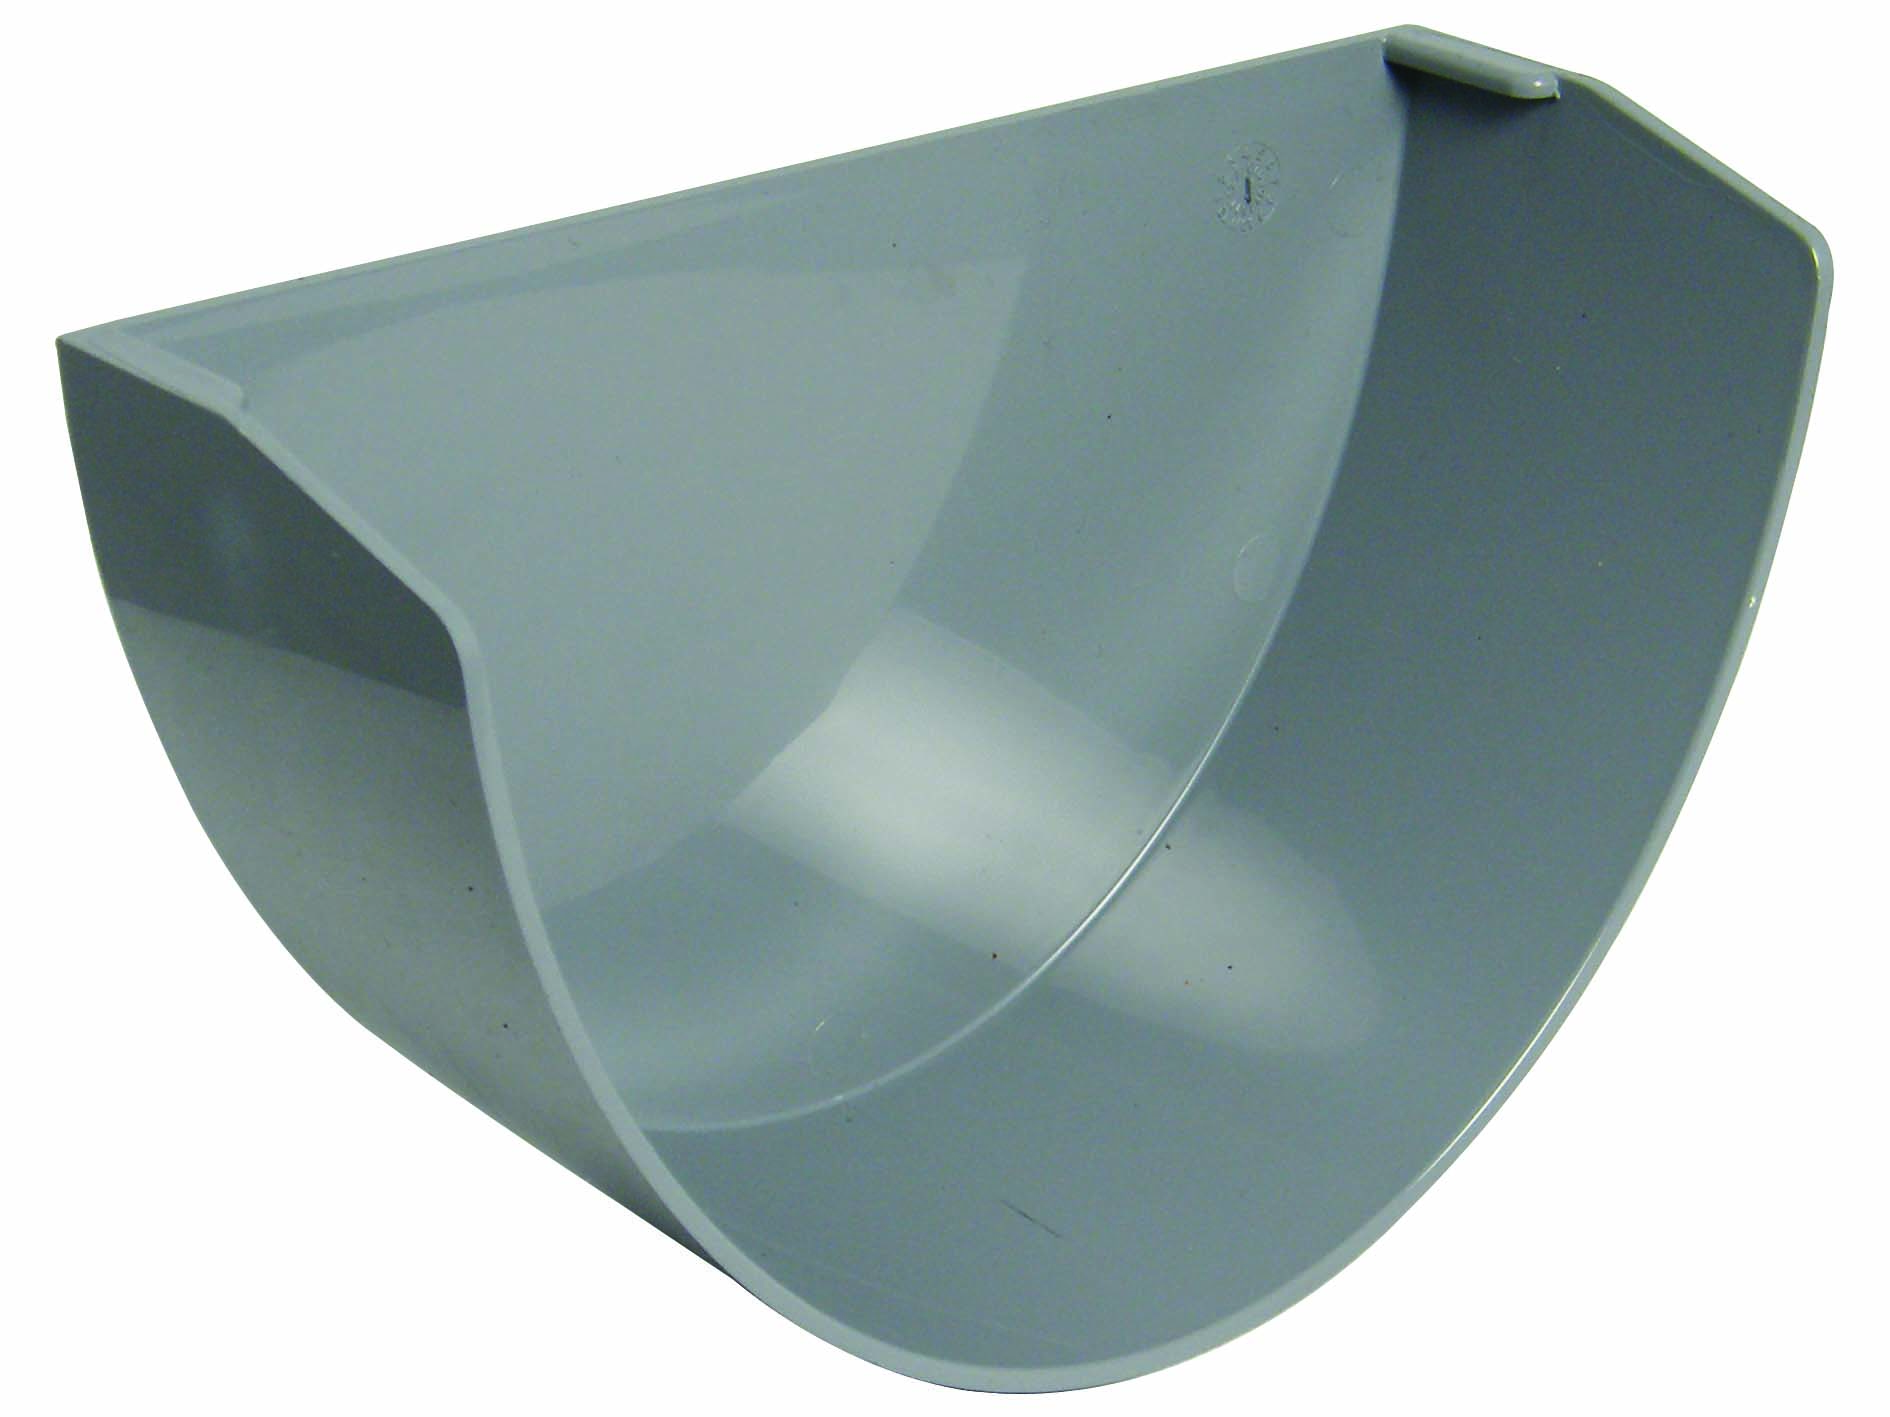 FLOPLAST REX2GR XTRAFLO 170MM GUTTER SYSTEM - INTERNAL STOPEND - GREY